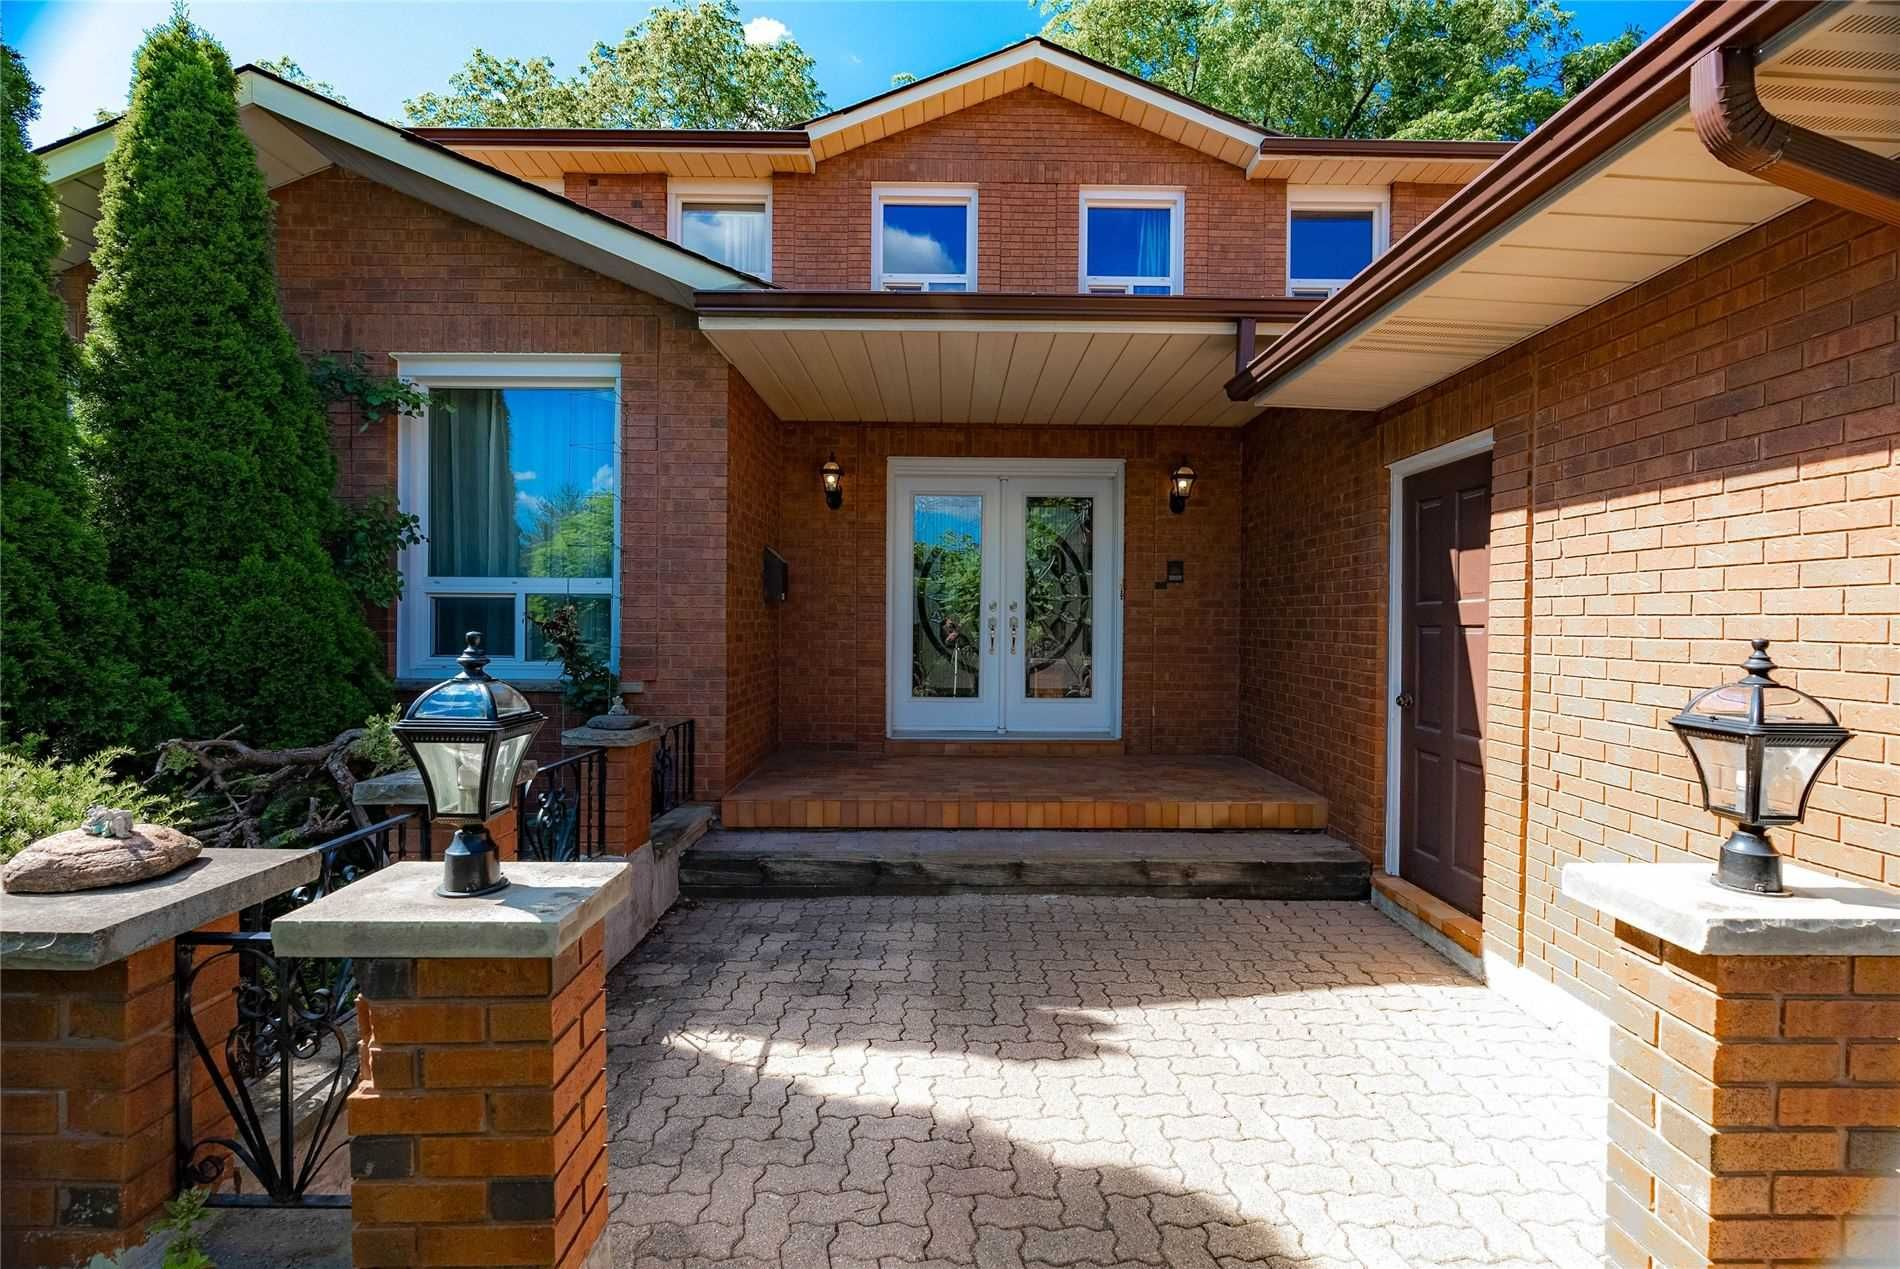 Main Photo: 24 Carnegie Crescent in Markham: Aileen-Willowbrook House (2-Storey) for sale : MLS®# N5364298